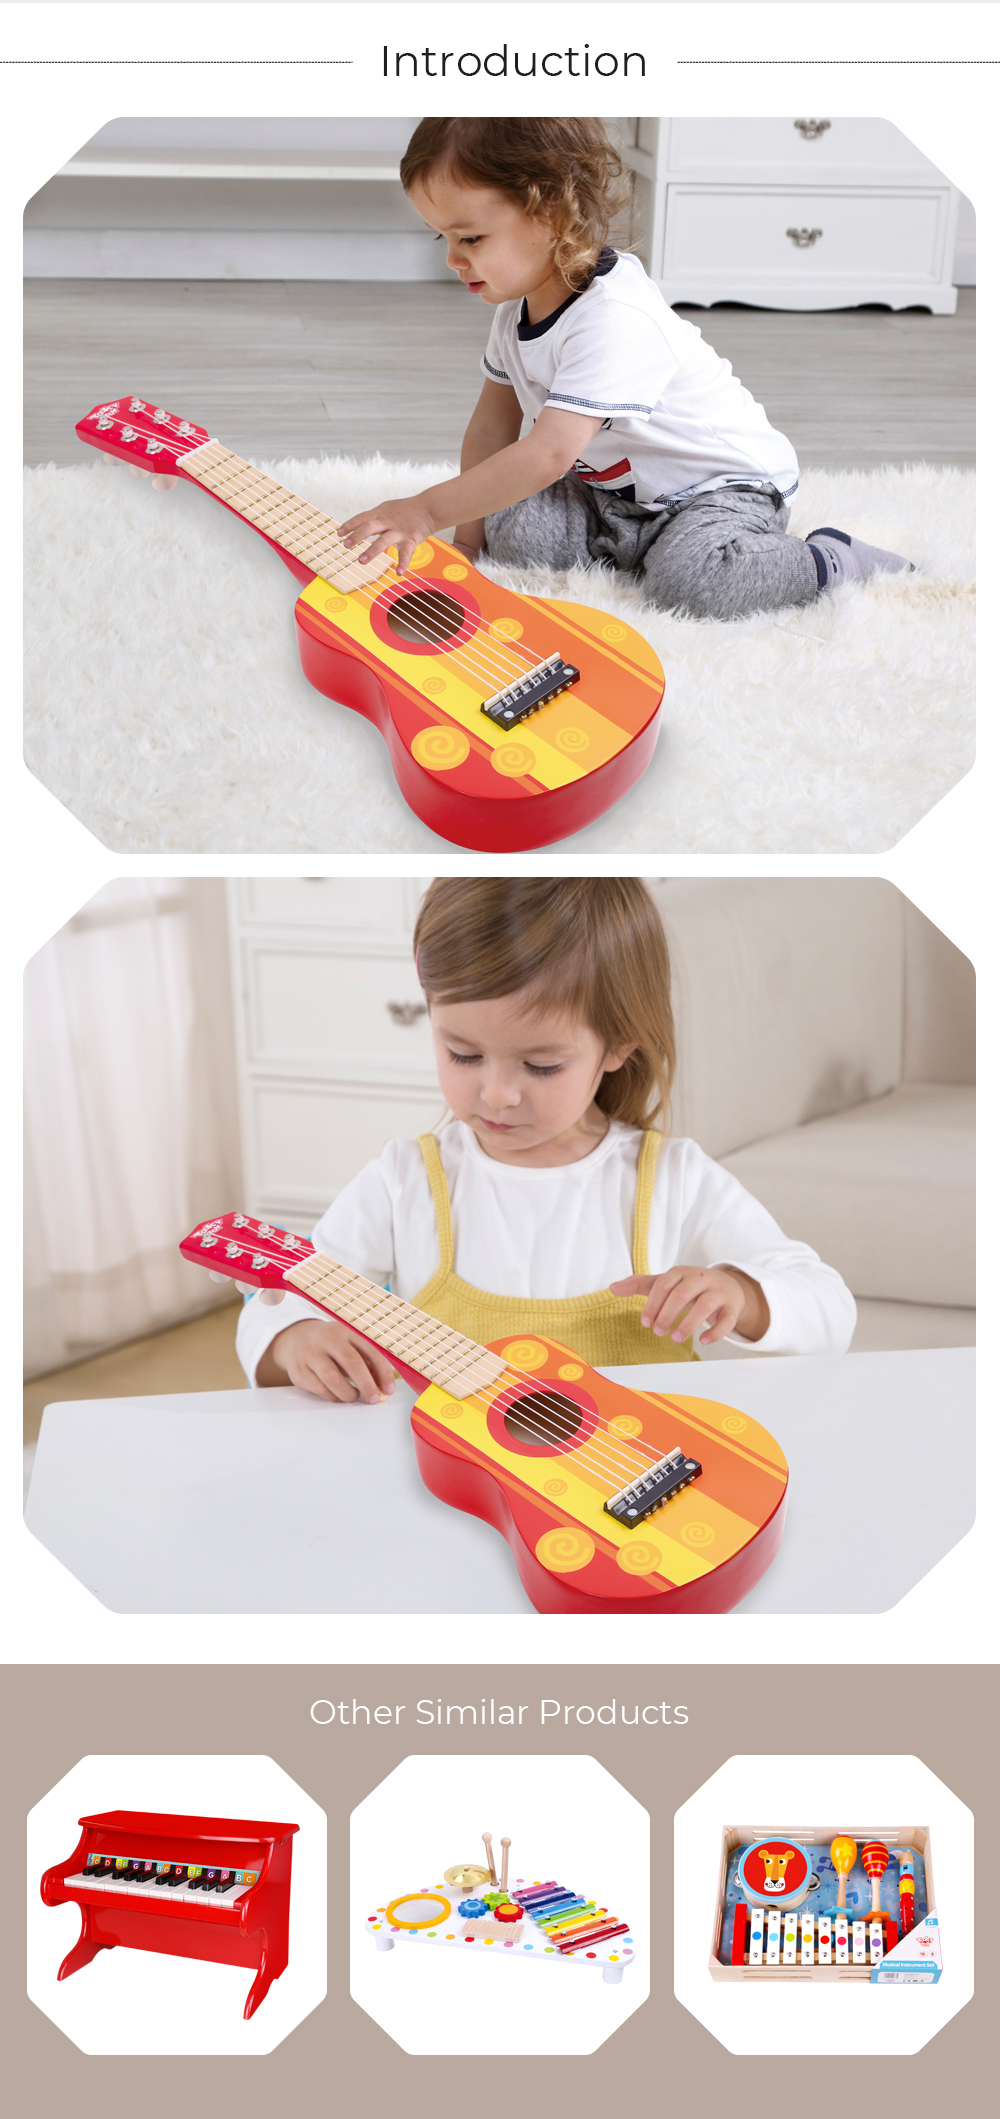 Fashion children wooden bass guitar, hot sale children toy acoustic guitar, popular wooden guitar